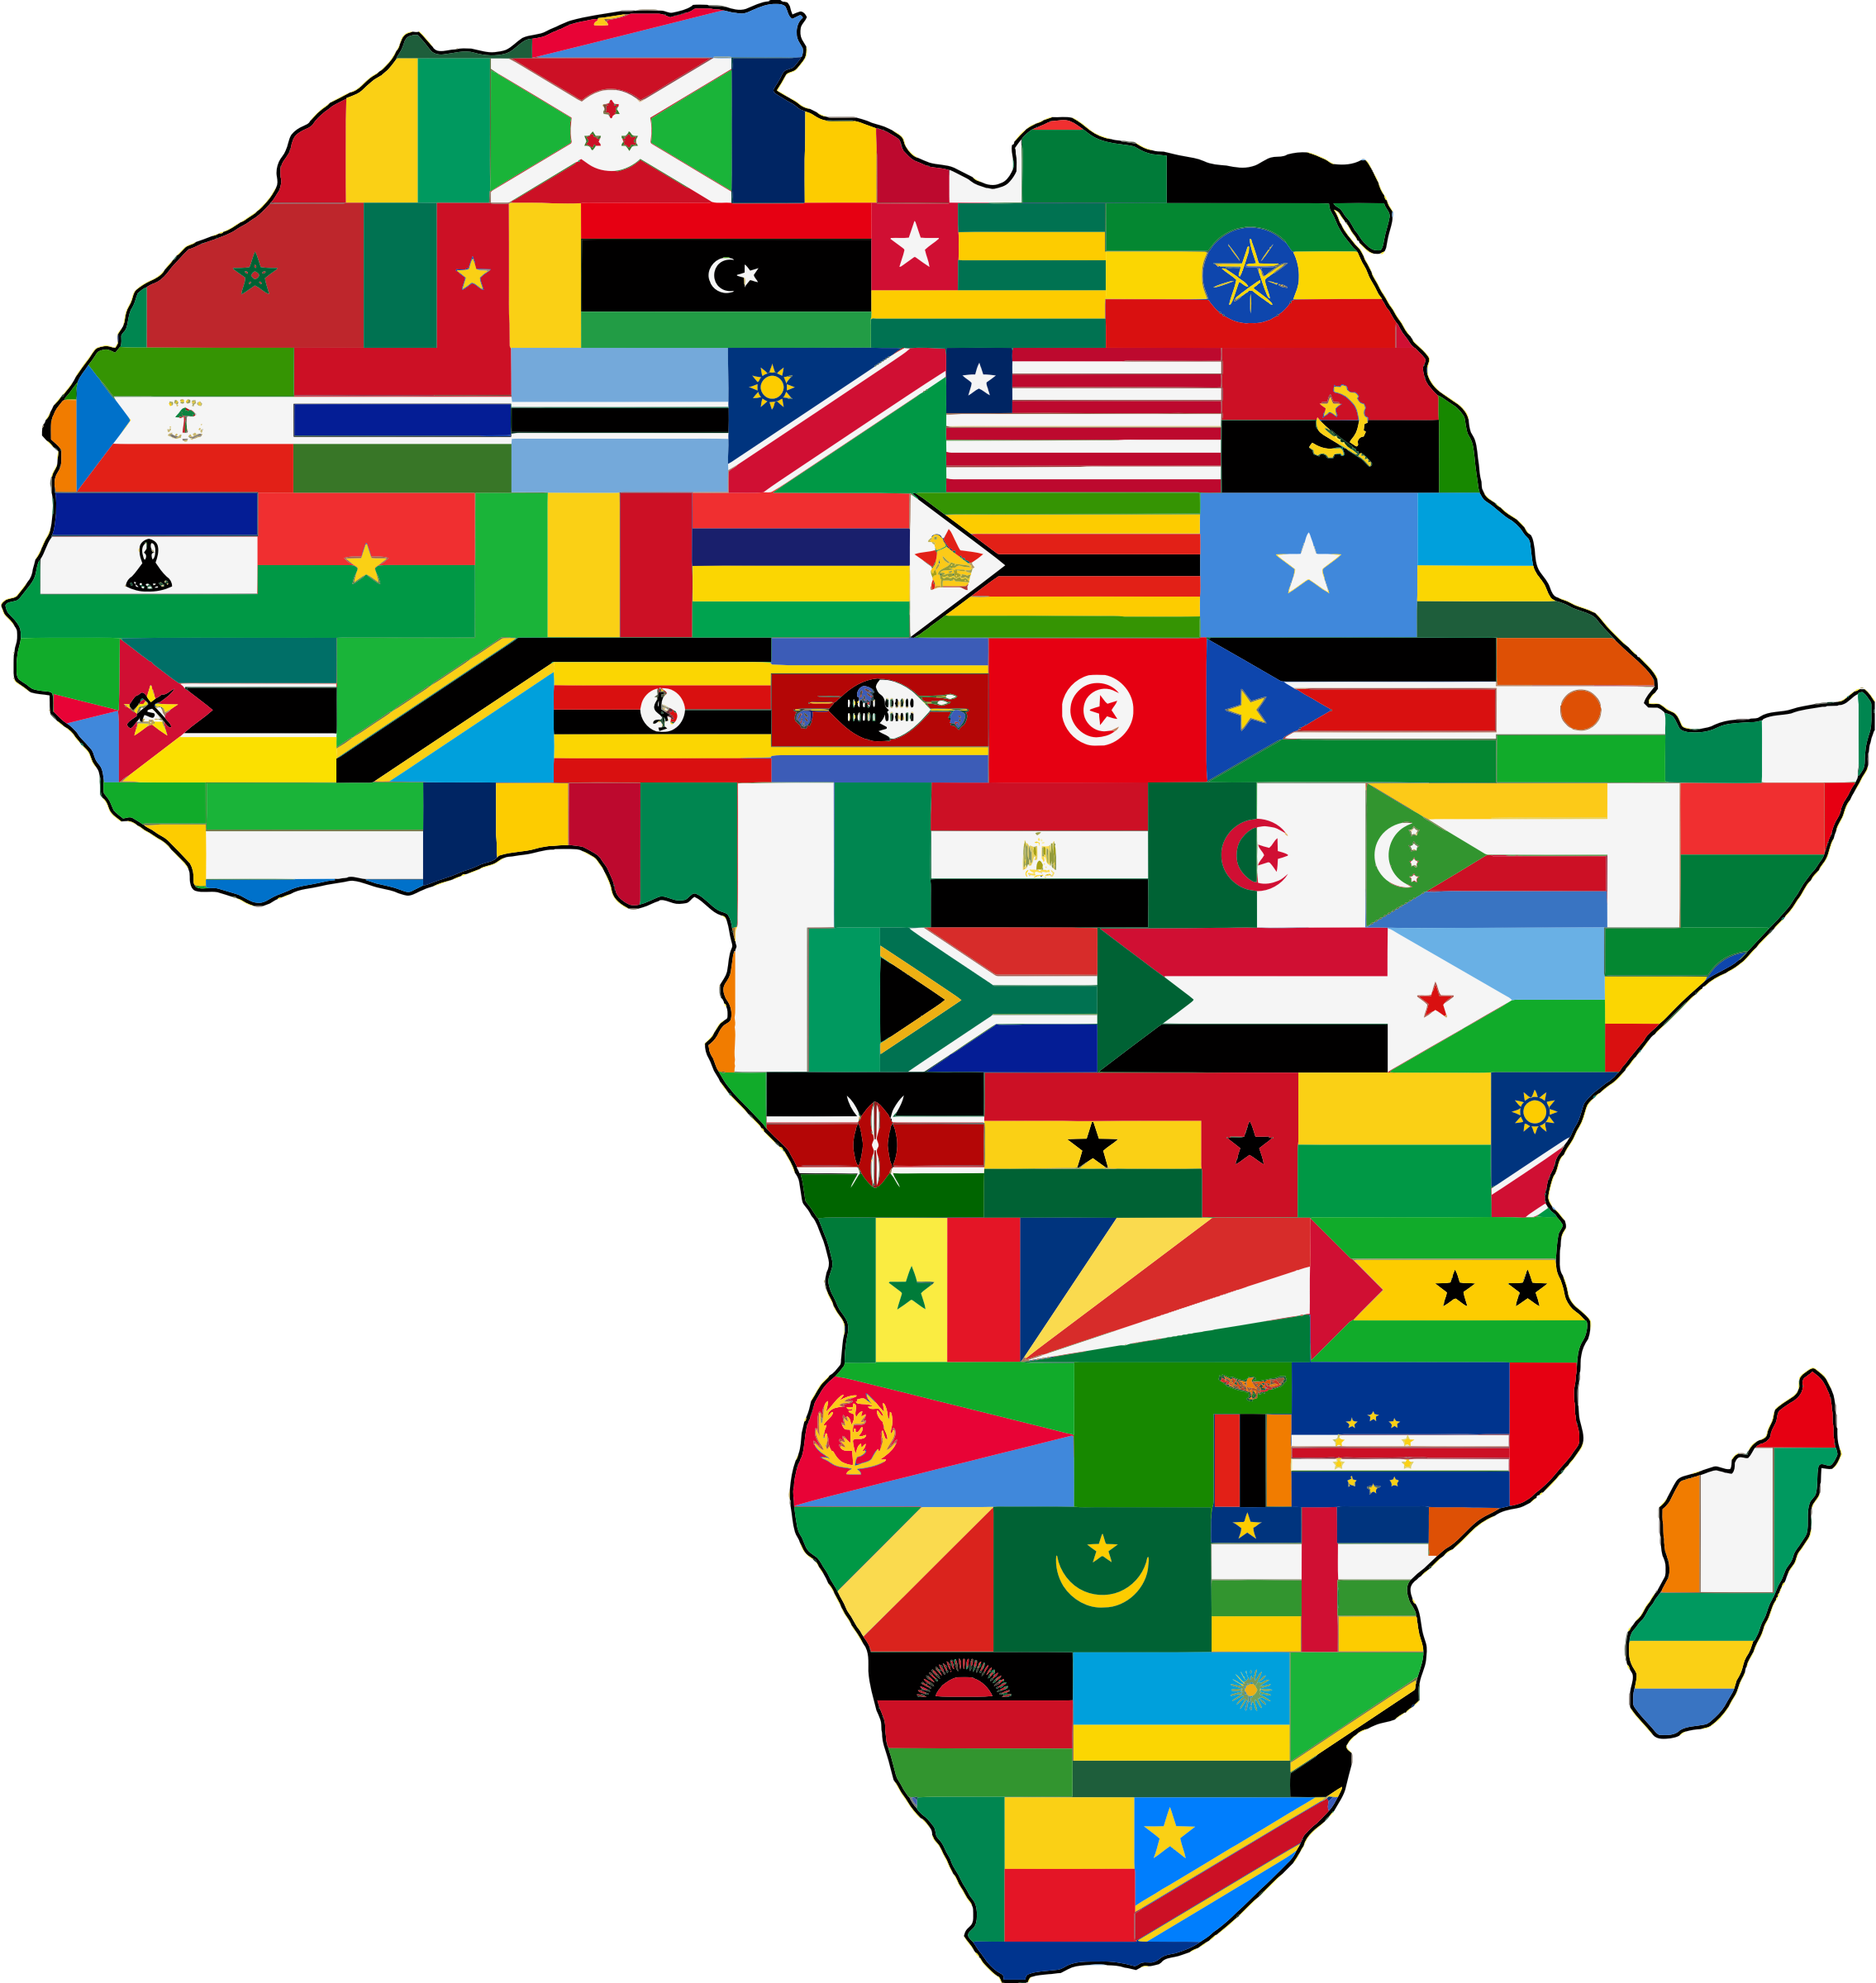 Africa Flags Slimmed Down by GDJ